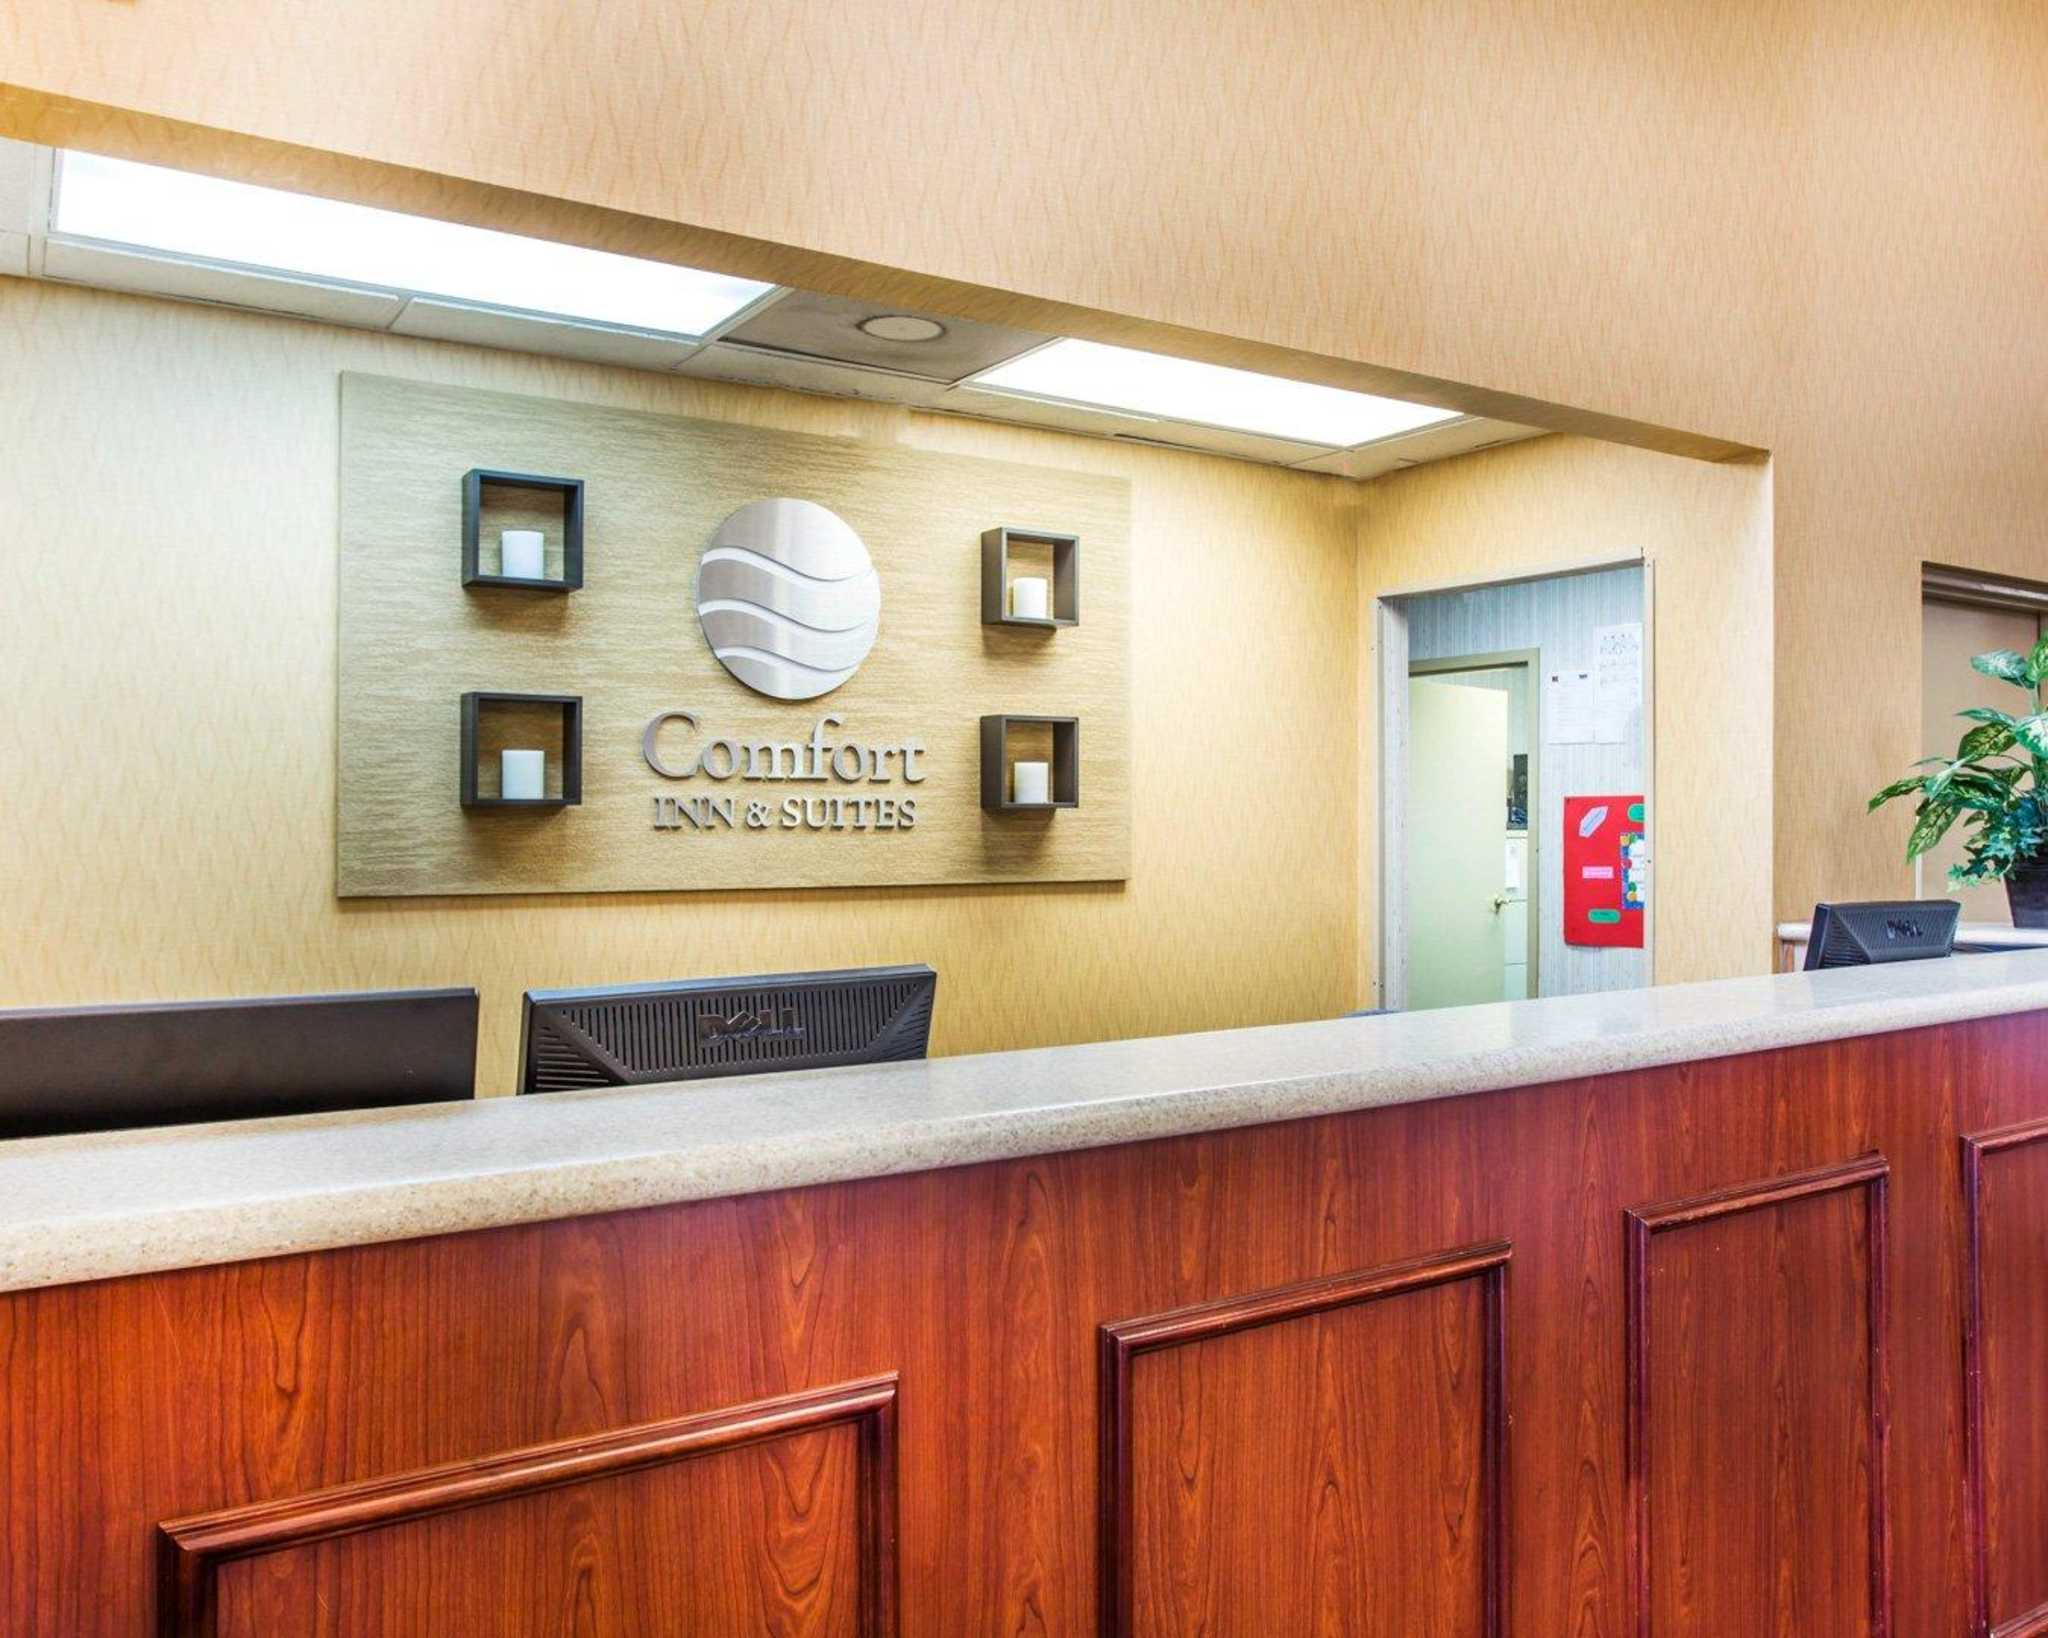 Comfort Inn & Suites at Stone Mountain image 13